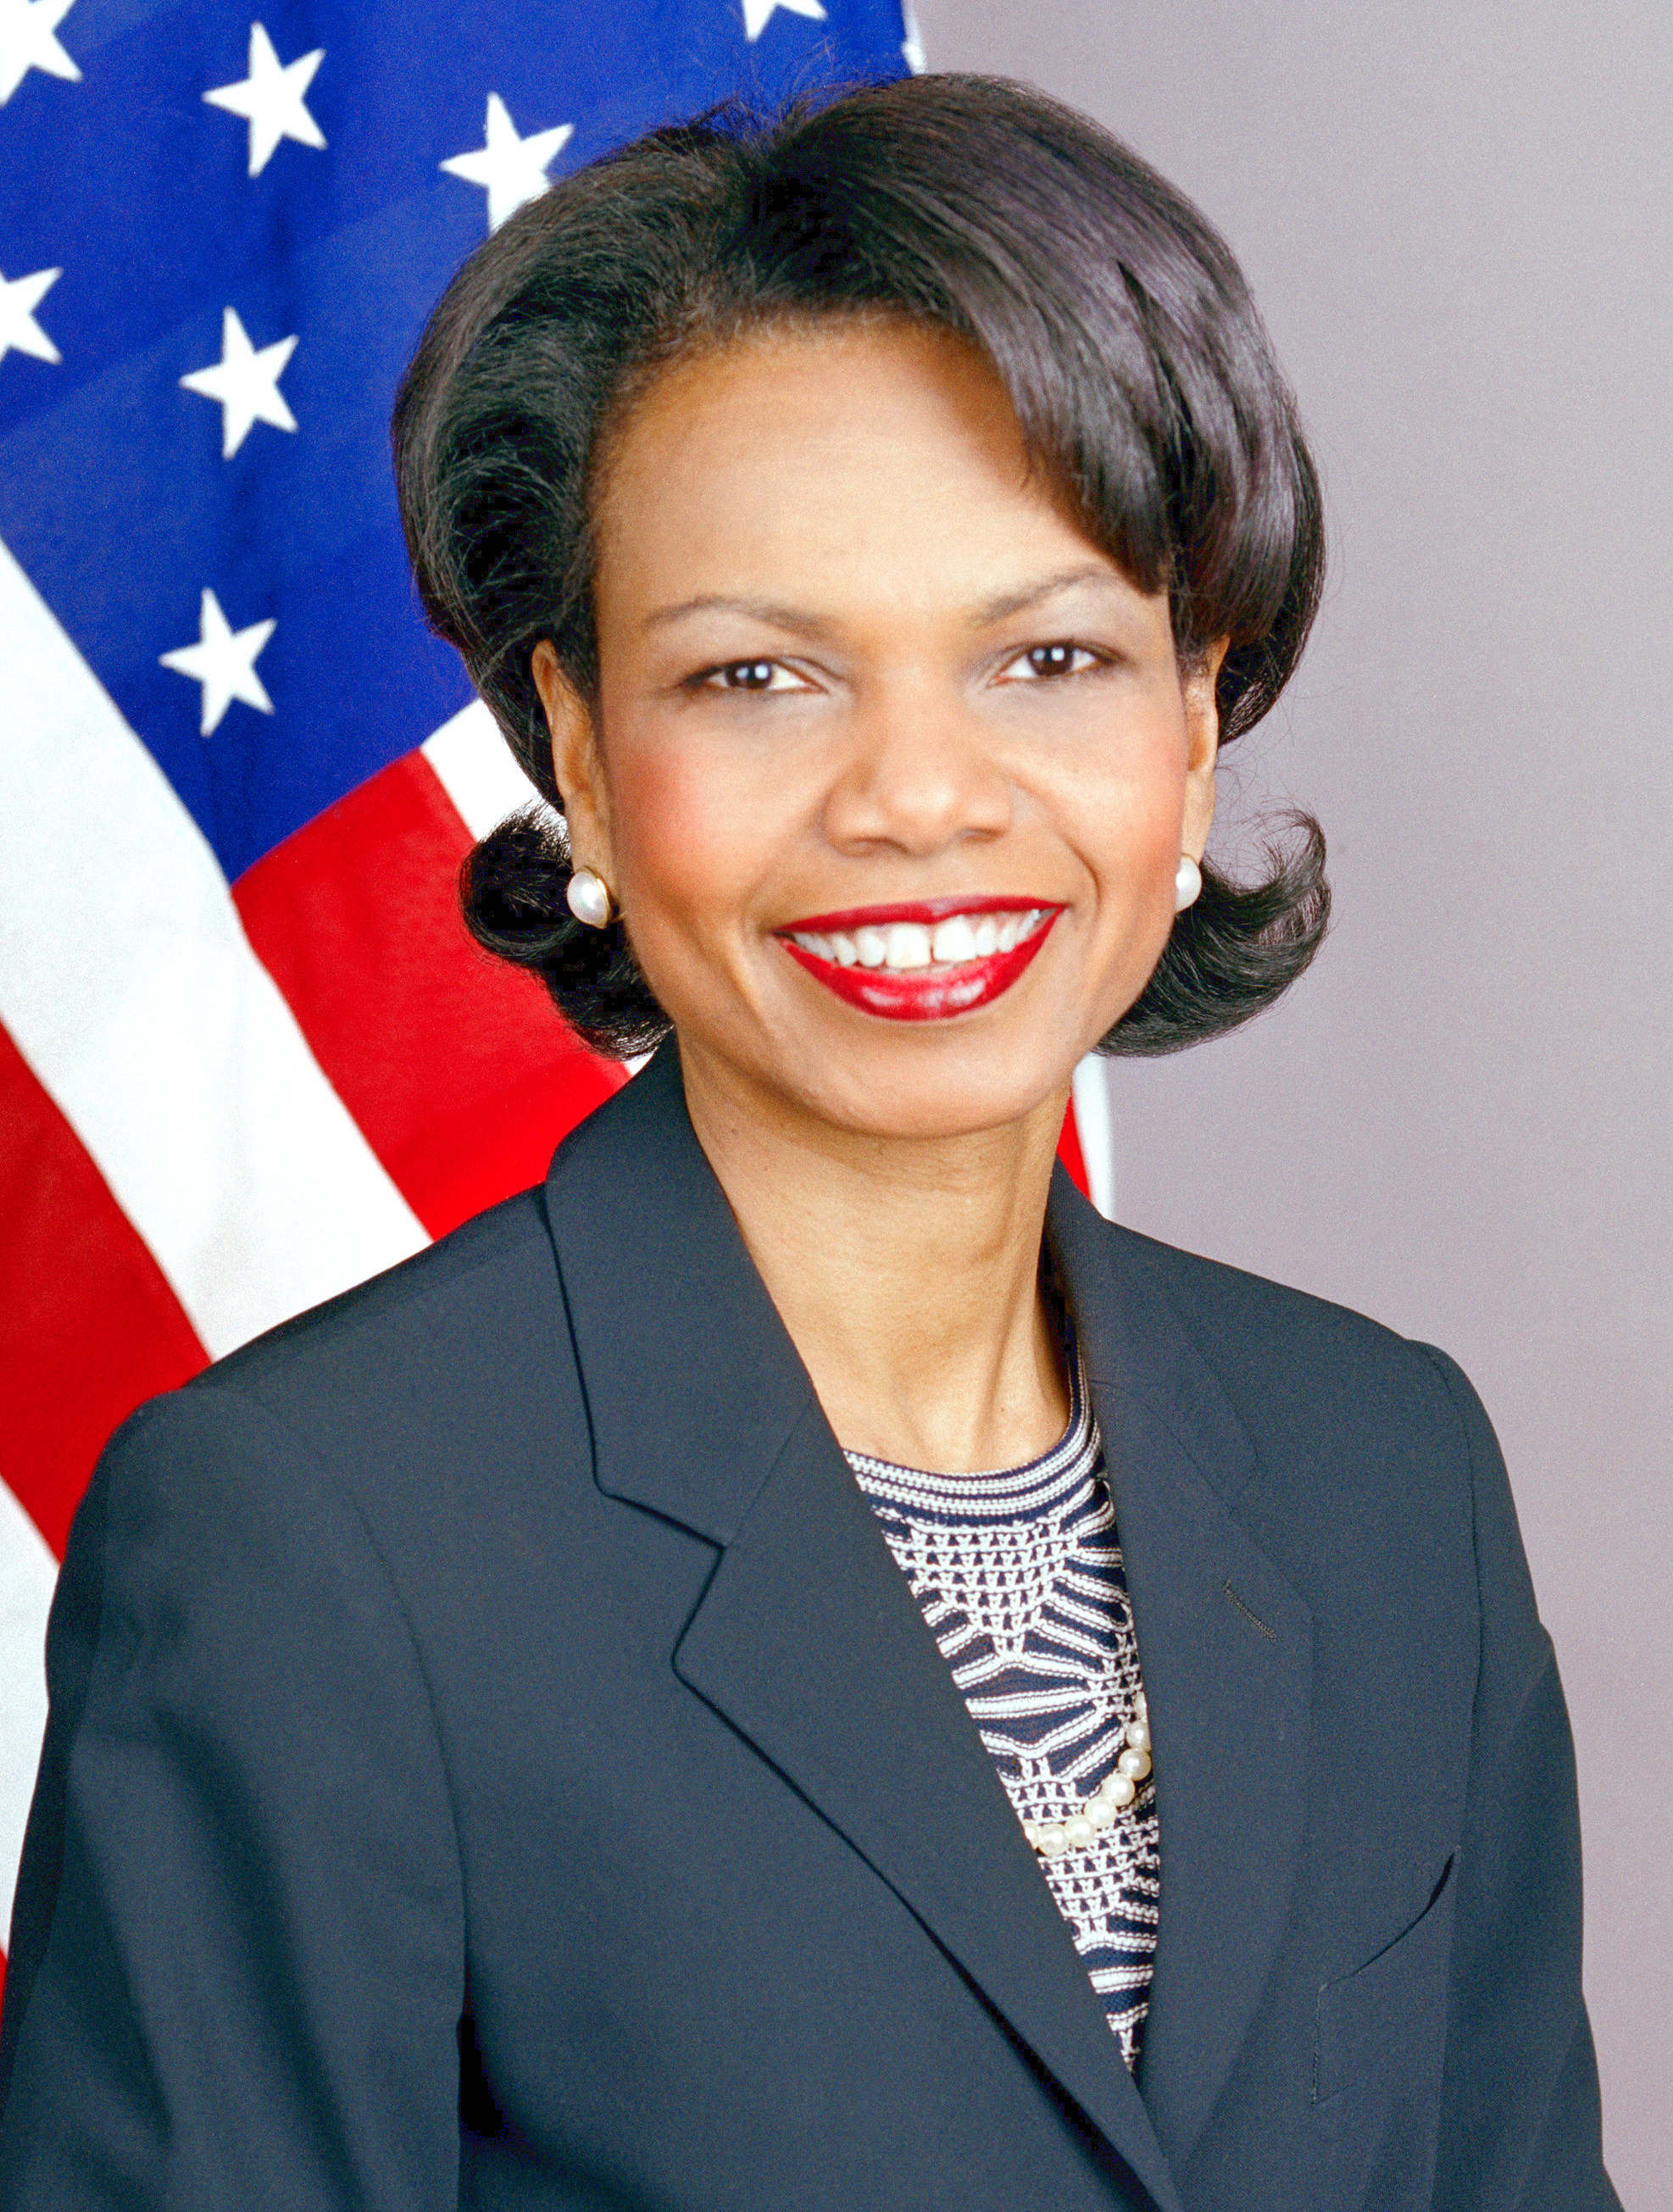 101 Condoleezza_Rice_cropped.jpg